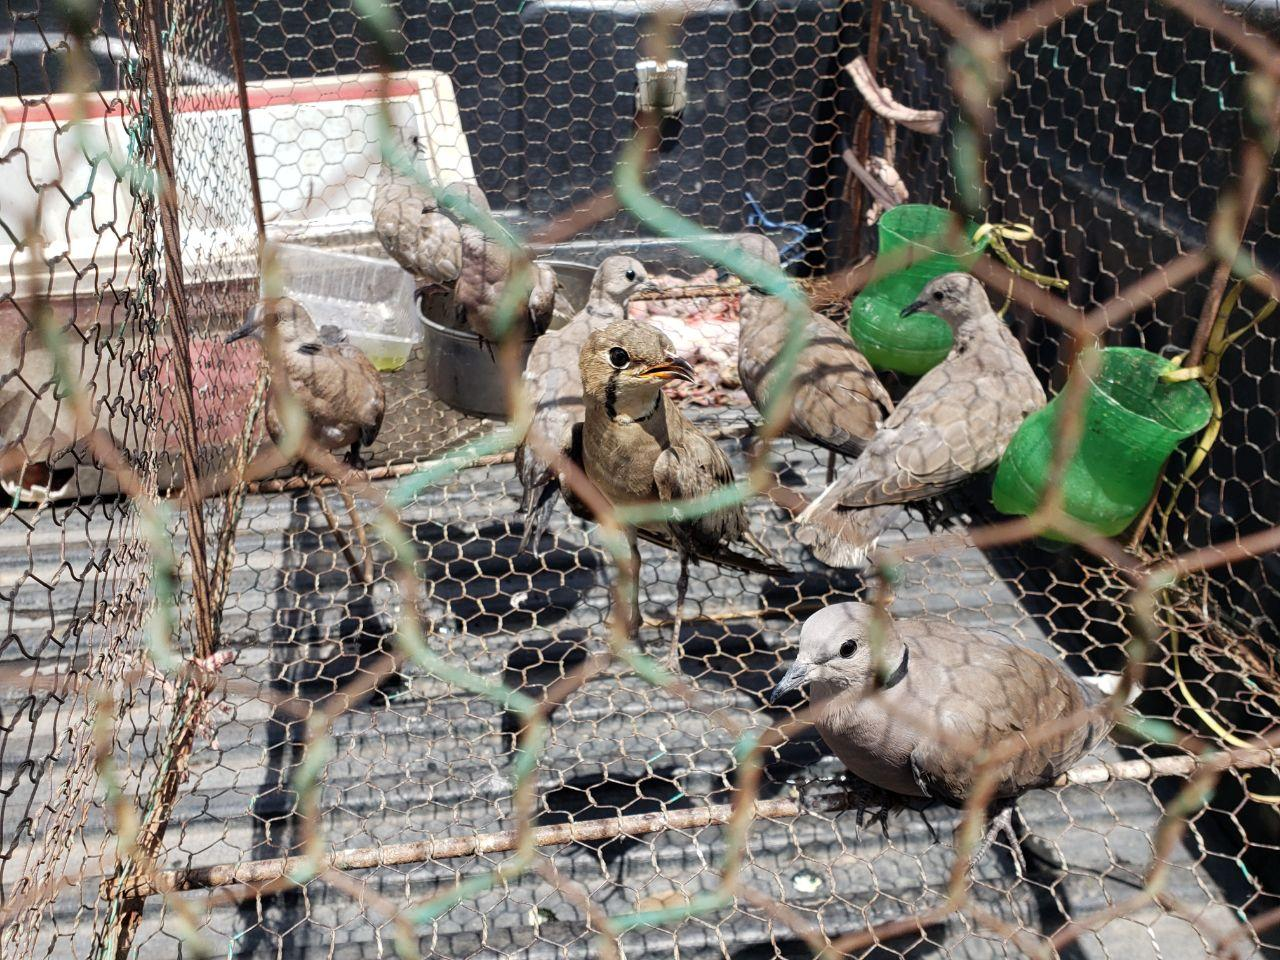 Almost 400 birds confiscated in raid